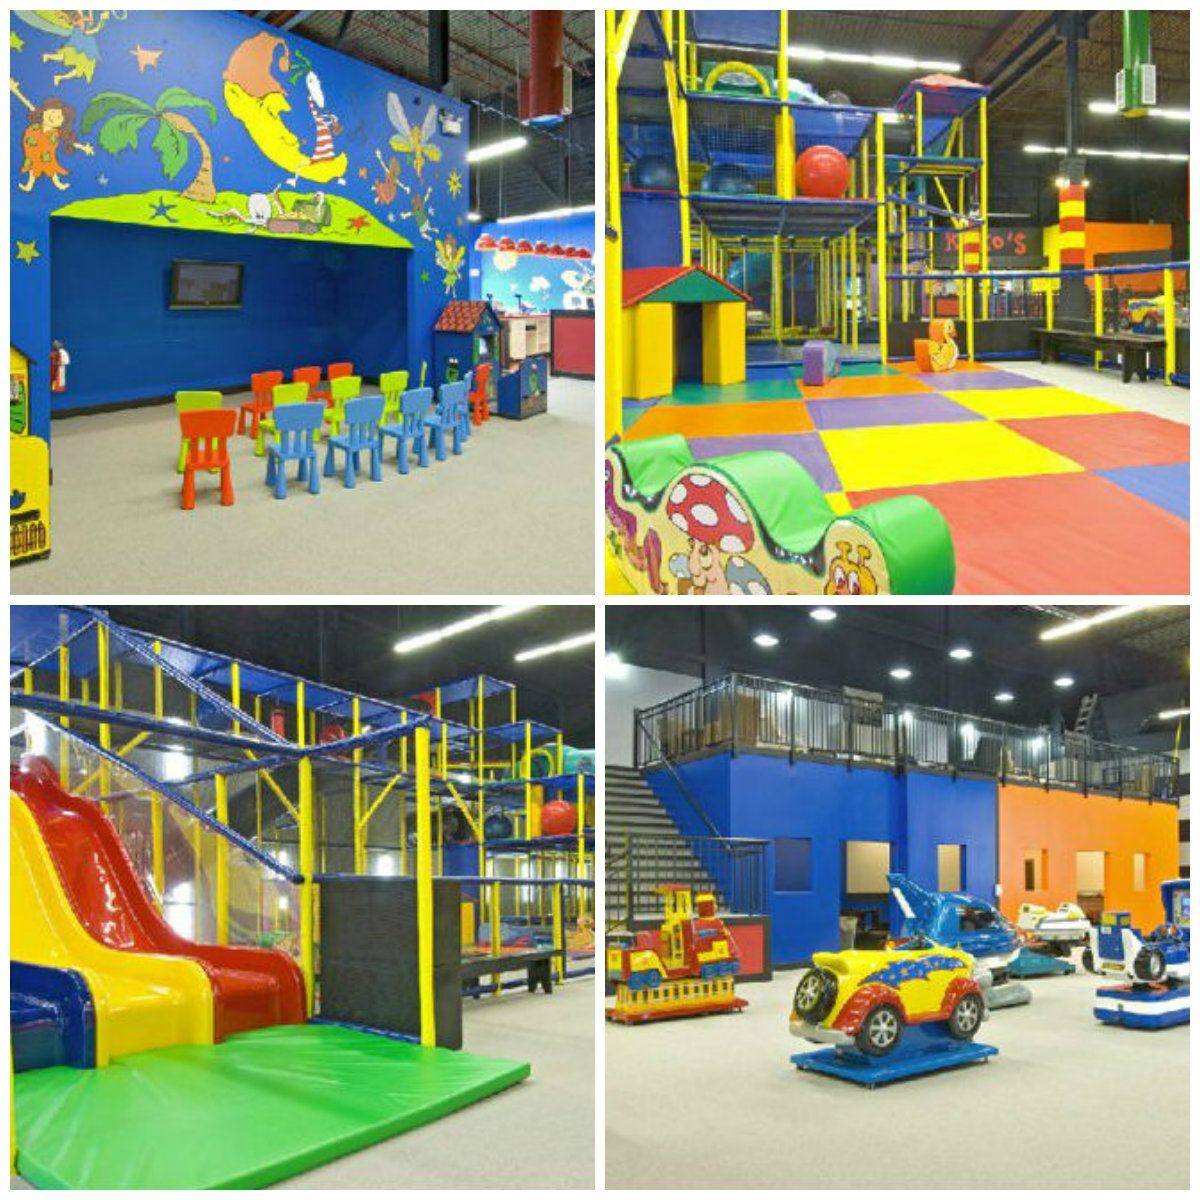 Best indoor playgrounds in Canada Kids indoor playground